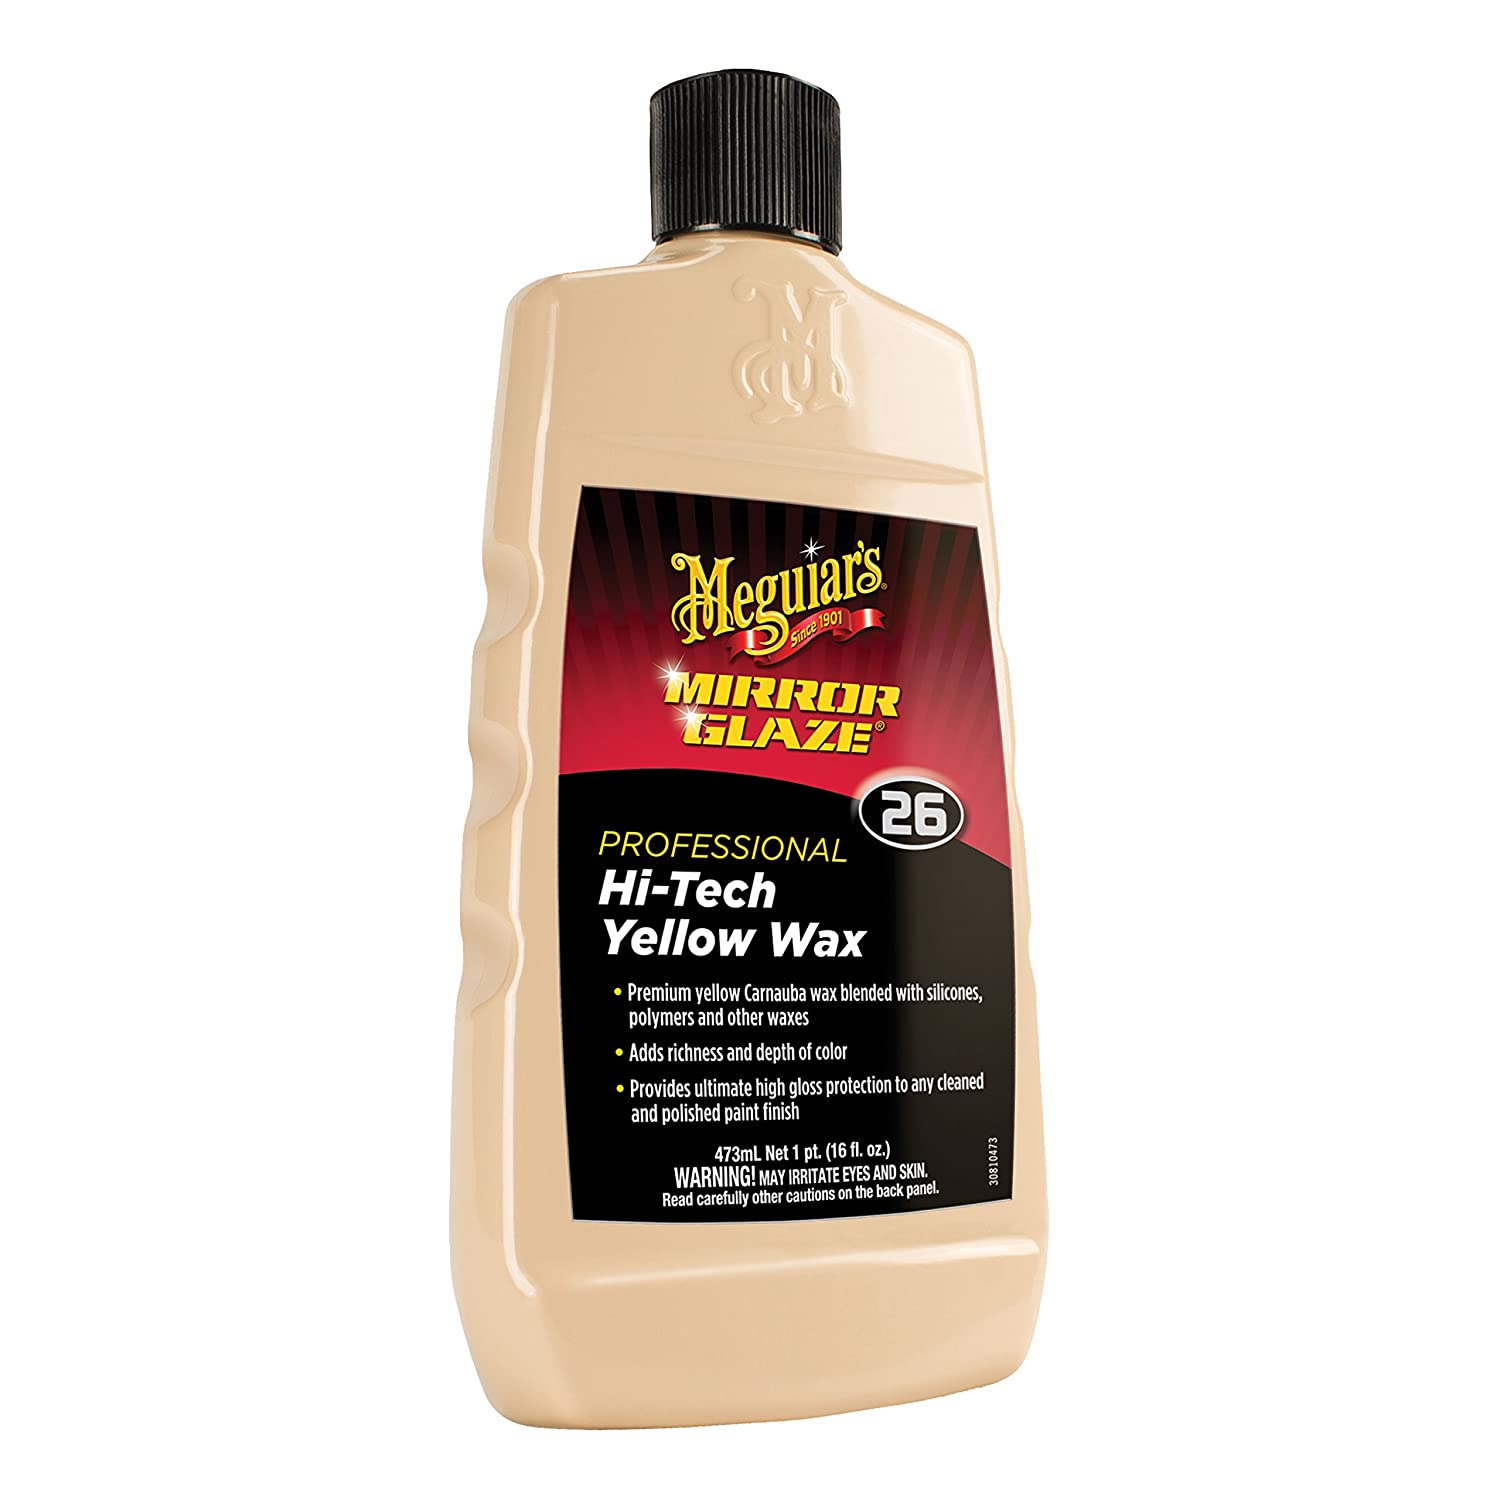 Meguiars Gold Class Carnauba Plus Quik Wax 2 G7716 1bh M26 Mirror Glaze Hi Tech Yellow Quality Hand Applied Polish For Your Car Rv Boat Motorcycle 16 Oz Automotive